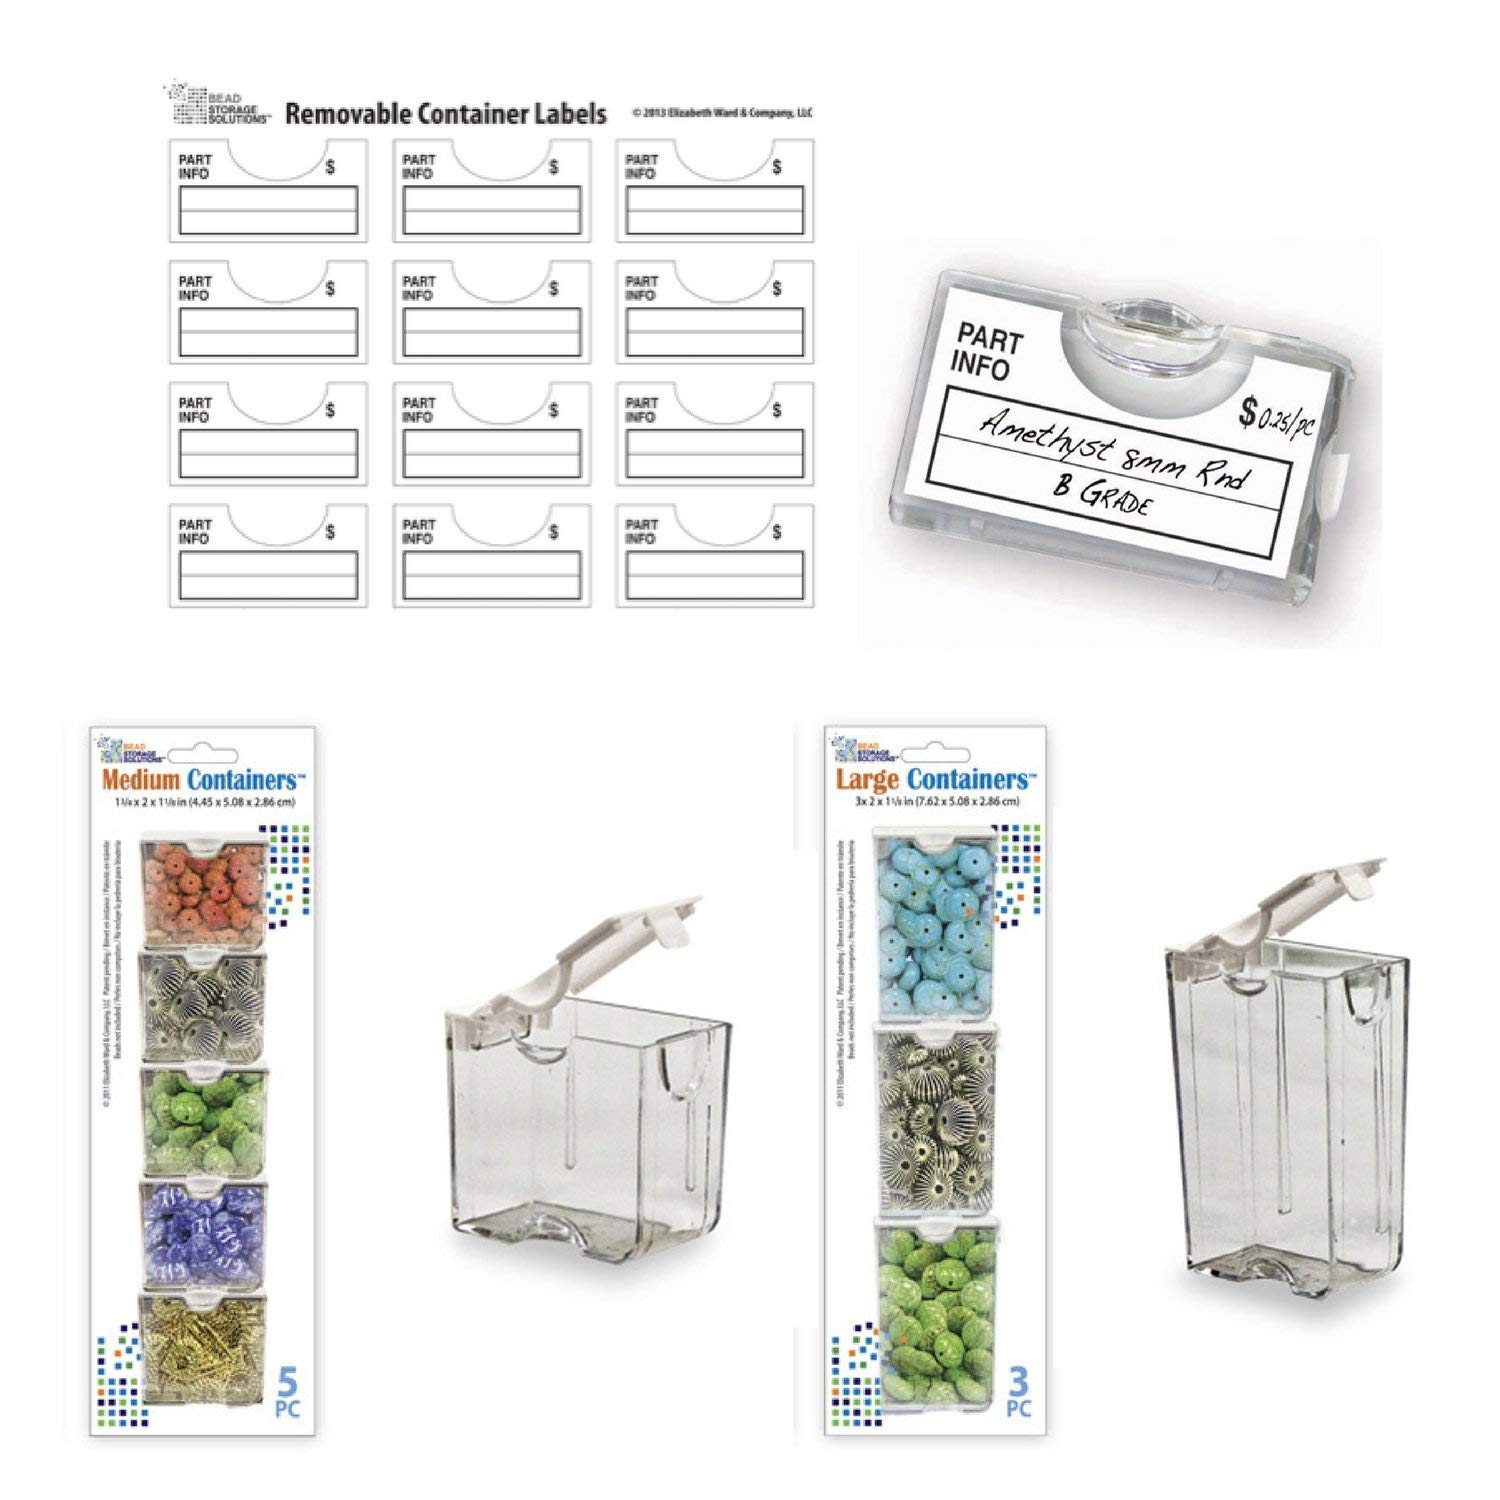 Bead Storage Container Bundle- Includes 3 Large Bead Storage Containers, 5 Medium Storage Containers and 96 Bead Storage Container Labels.